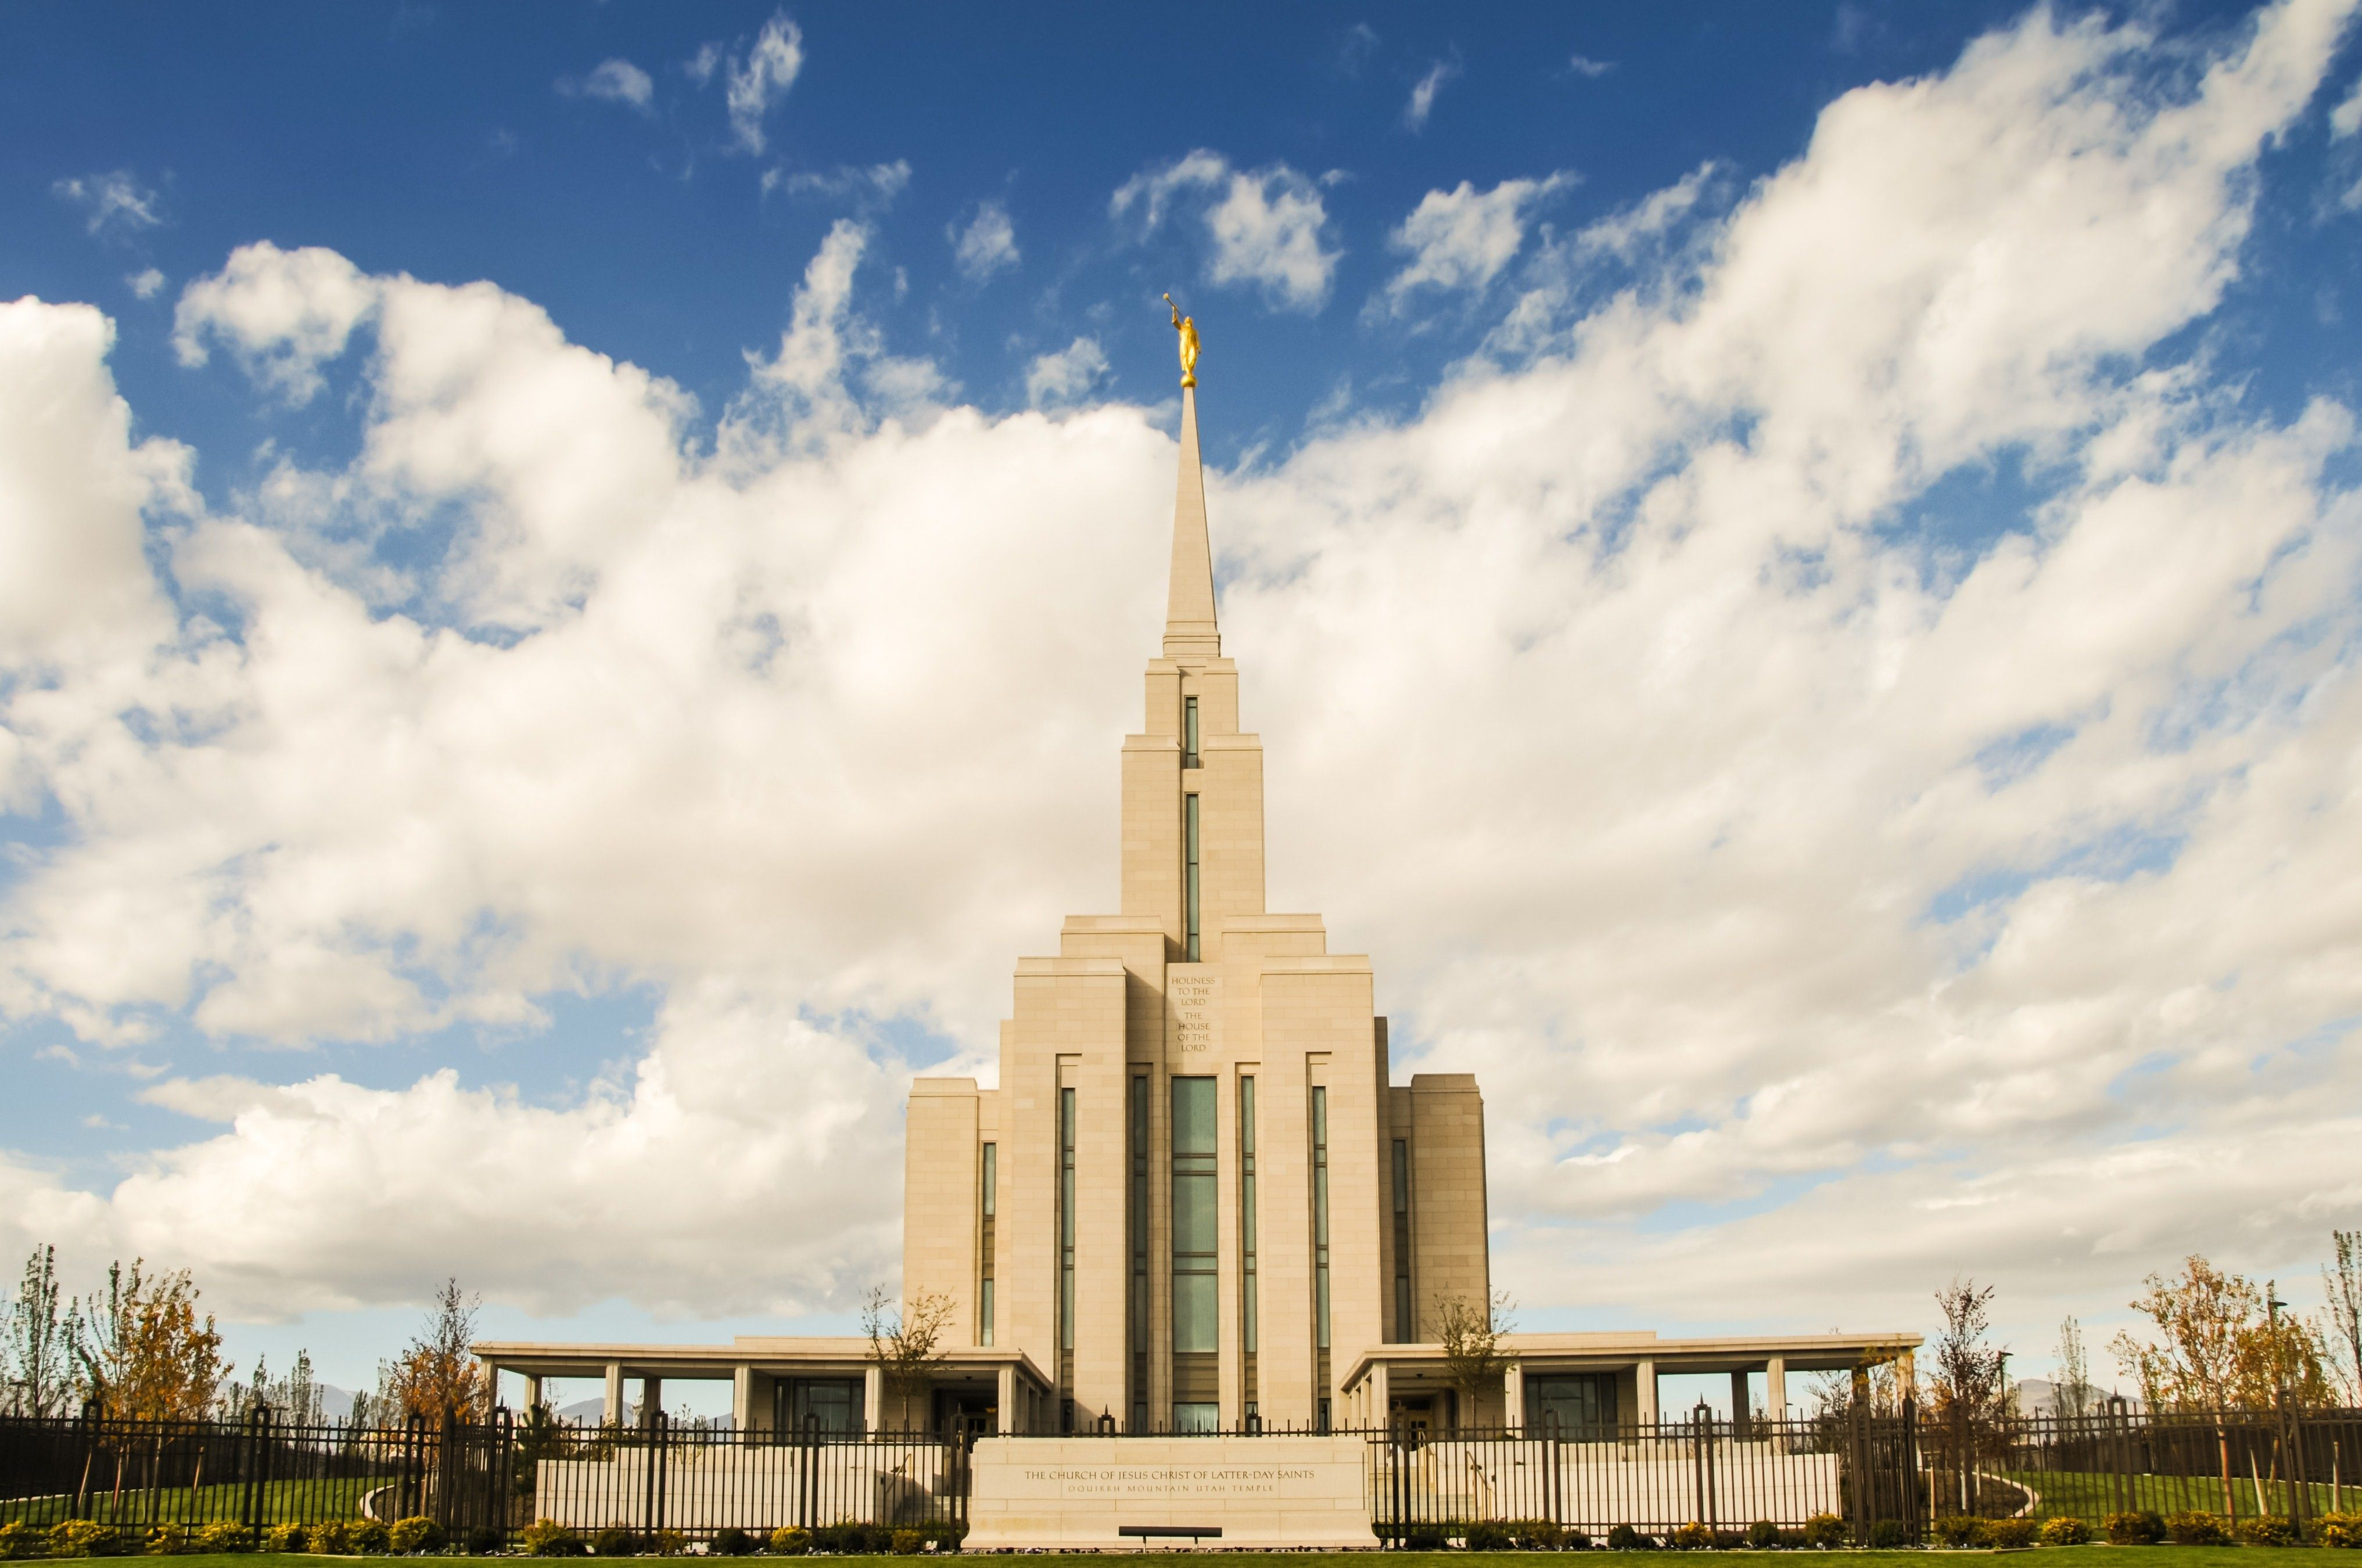 The entire Oquirrh Mountain Utah Temple, including the entrance, name sign, and scenery.